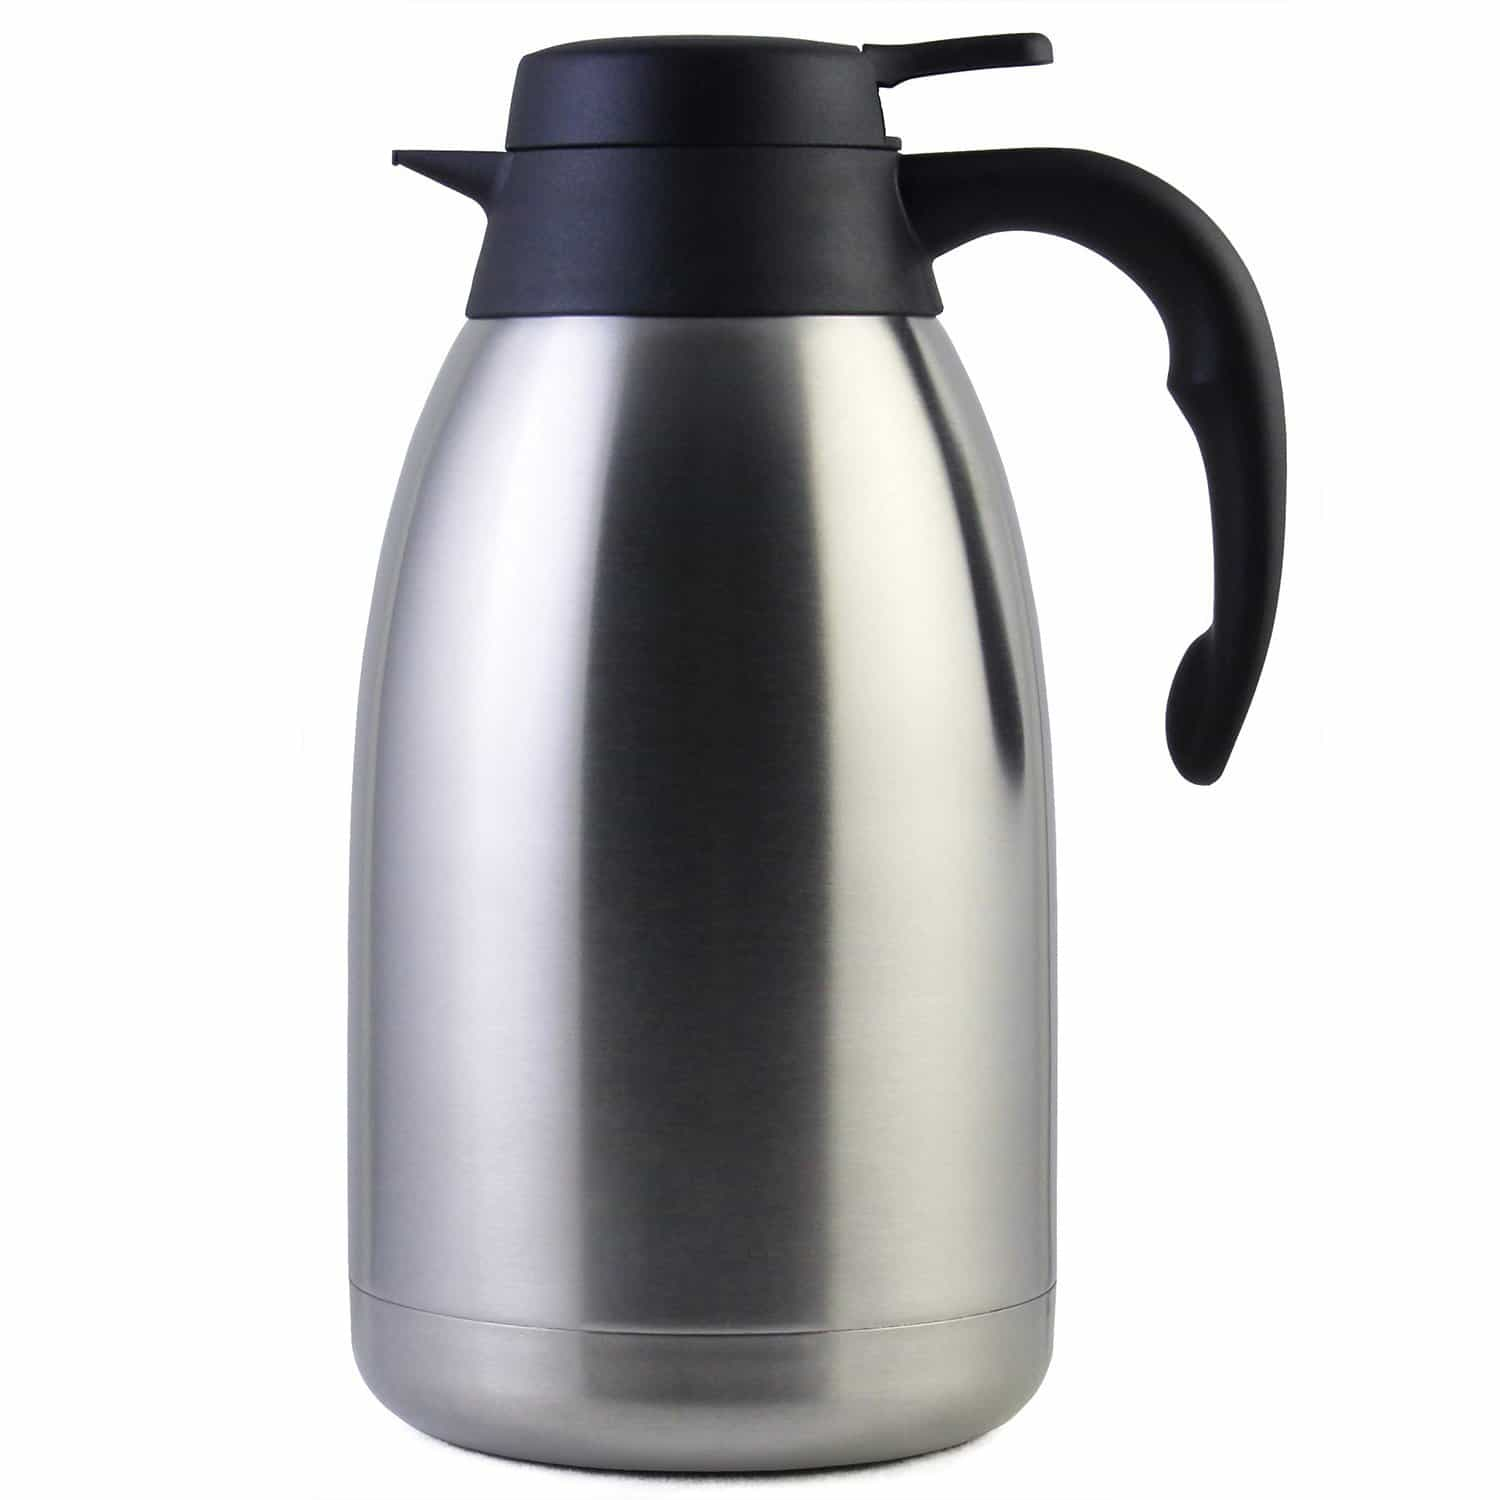 coffee carafes that keep coffee hot